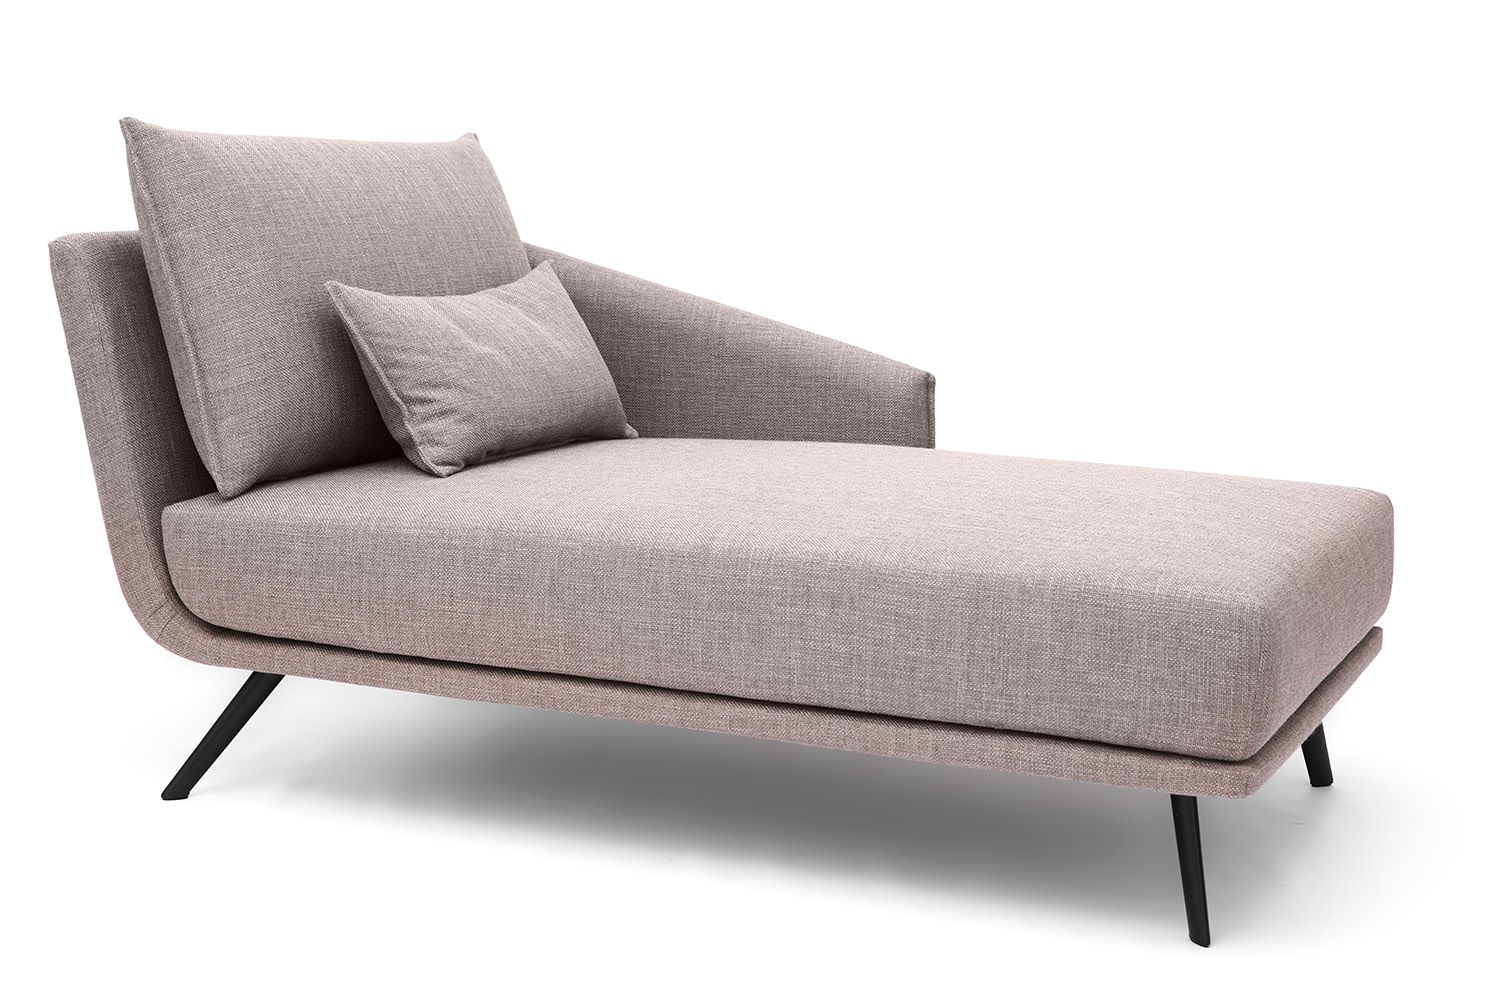 Chaise longue sofa bed ebay convertible sofa ebay - Sofa rinconera con chaise longue ...